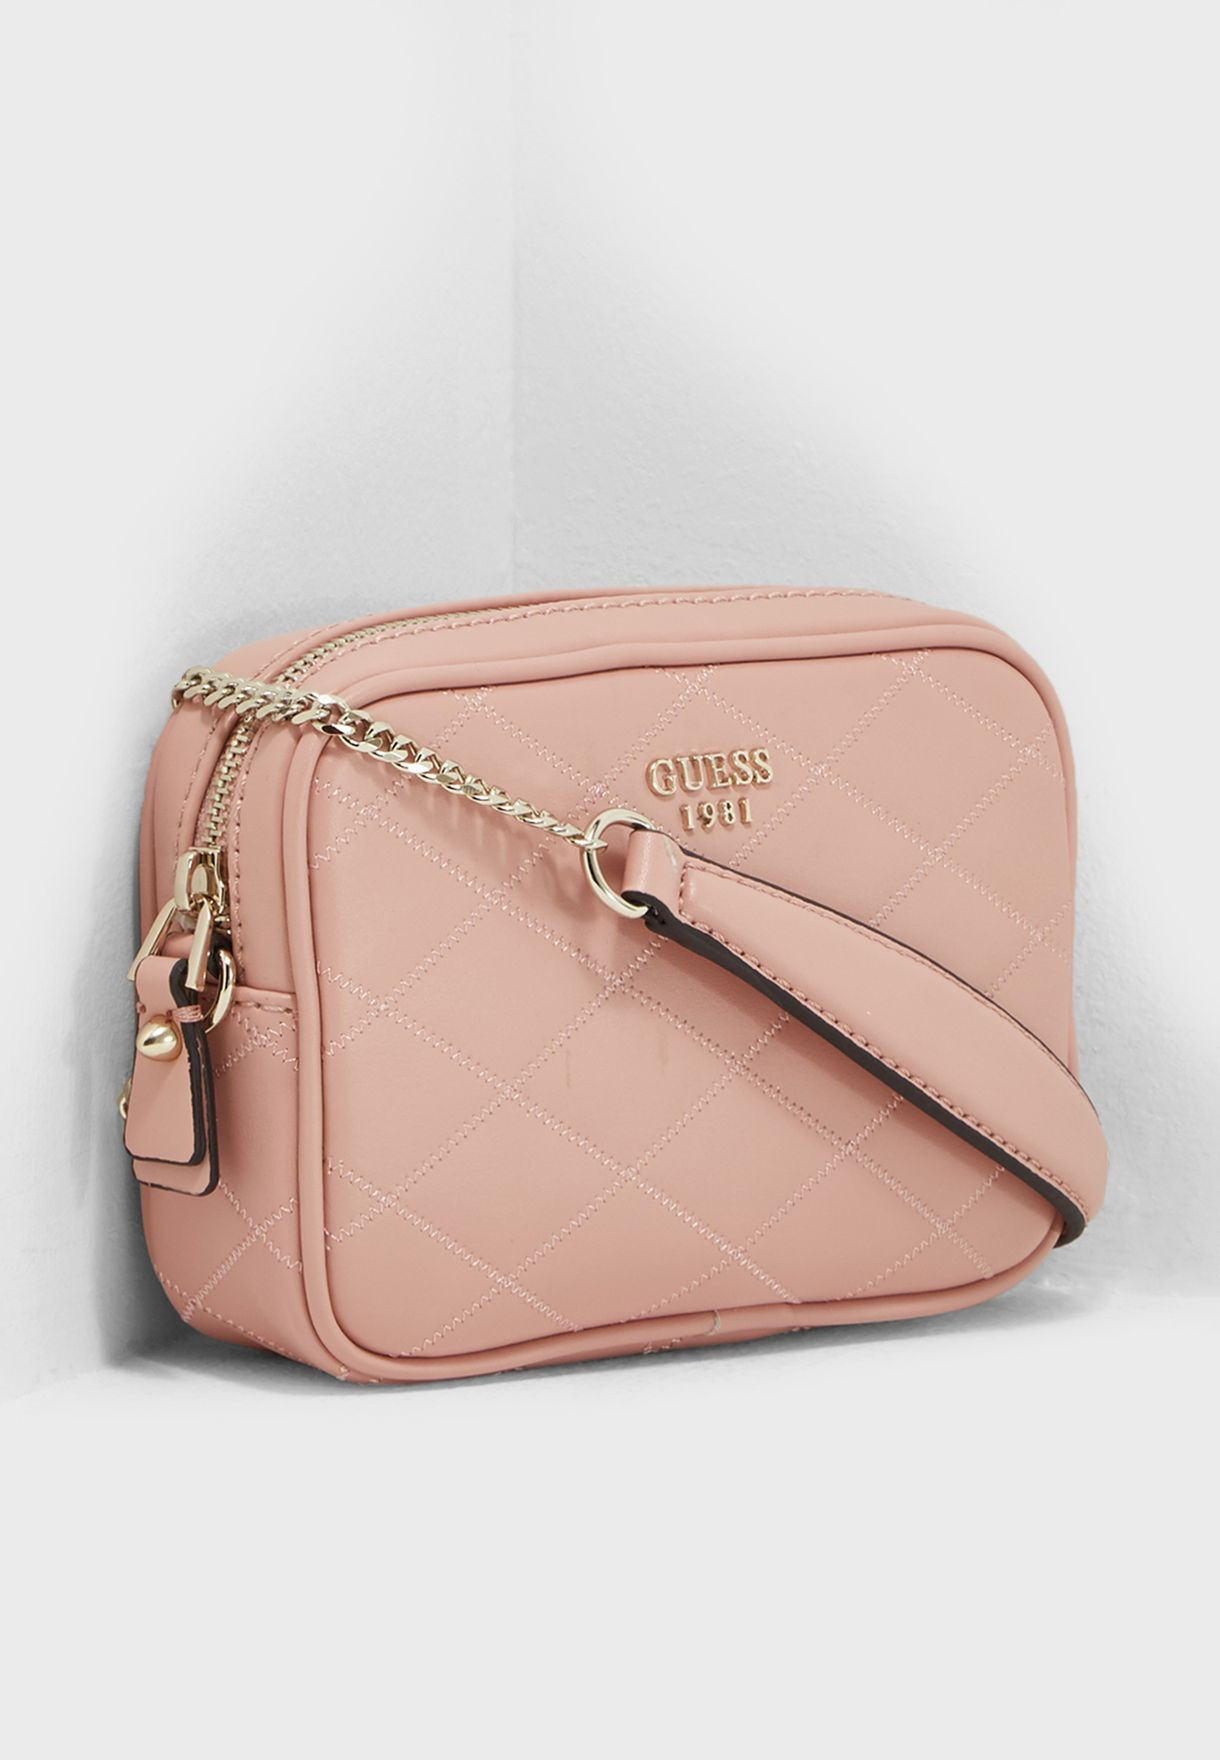 21e99beaad Shop Guess pink Penelope Top Zip Crossbody VG696370ROS for Women in ...